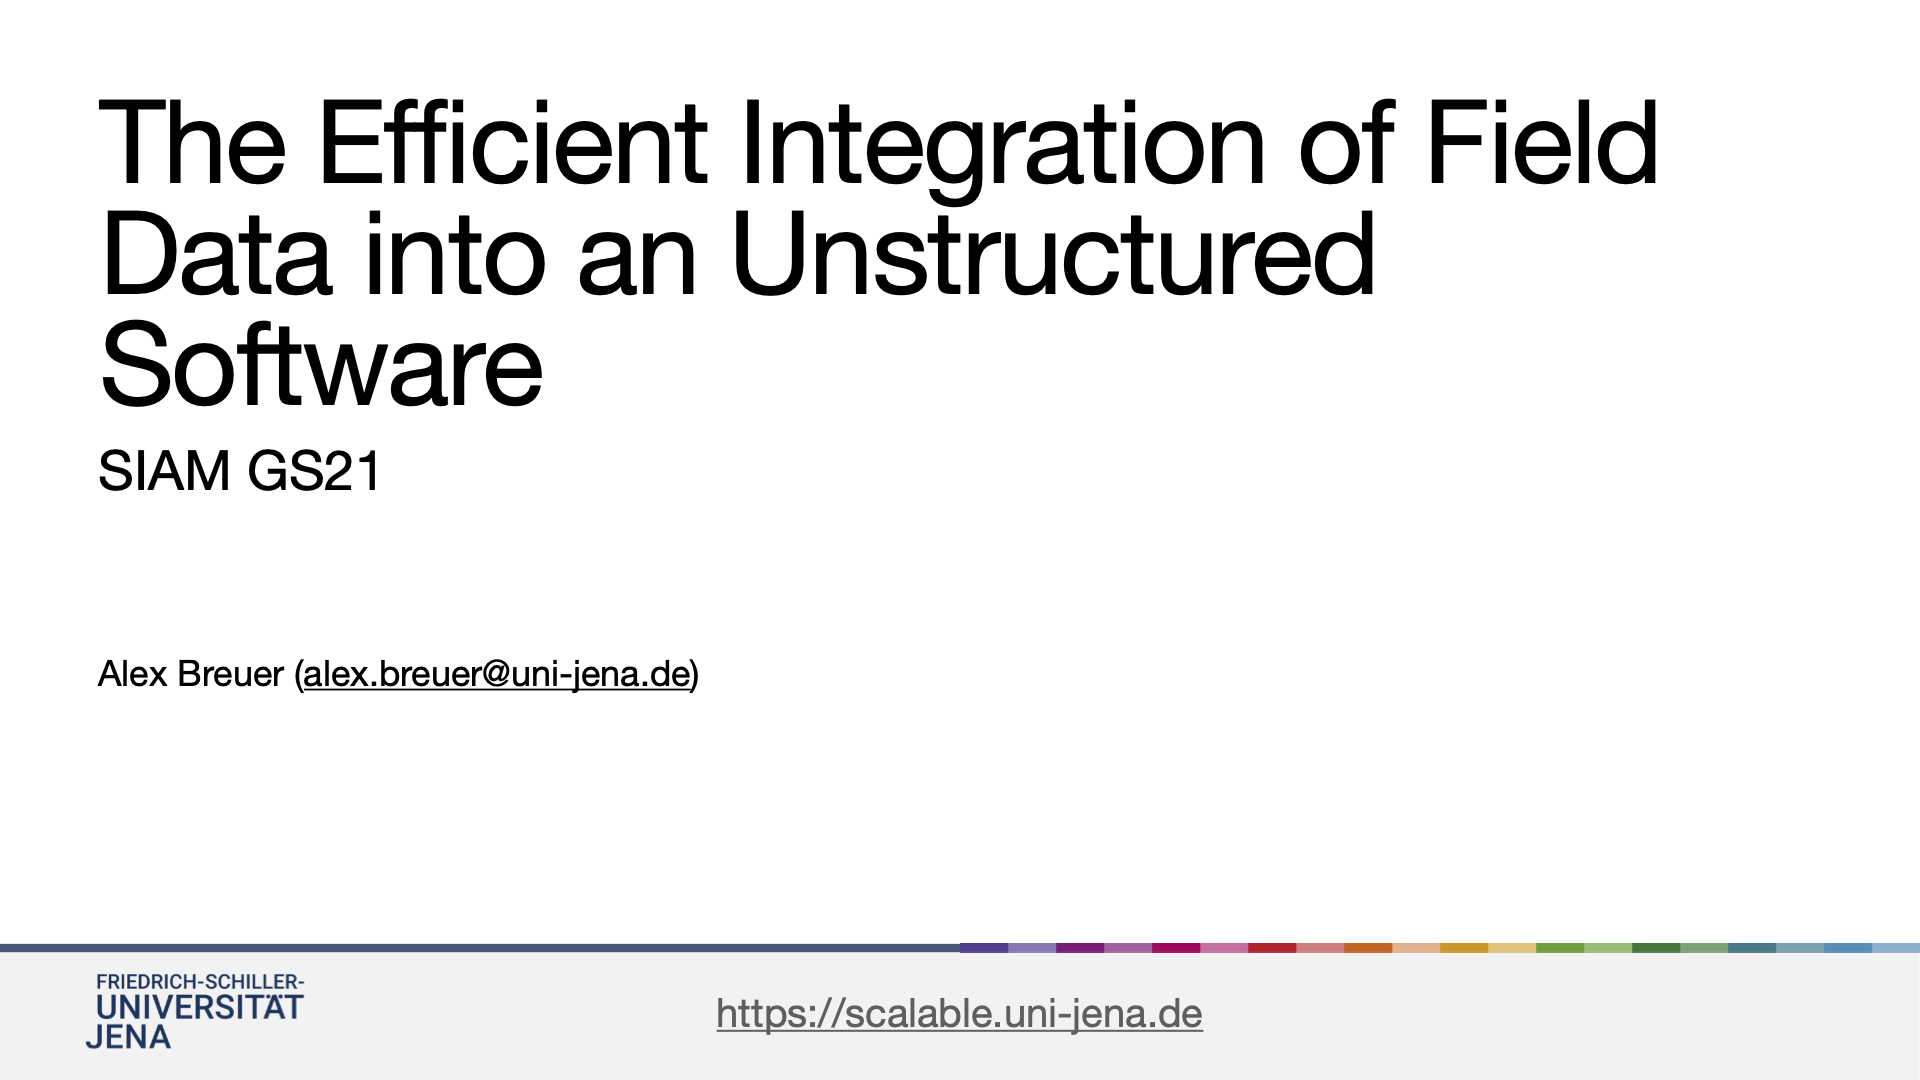 """Slides of the presentation """"The Efficient Integration of Field Data into an Unstructured Software"""" at SIAM GS21."""